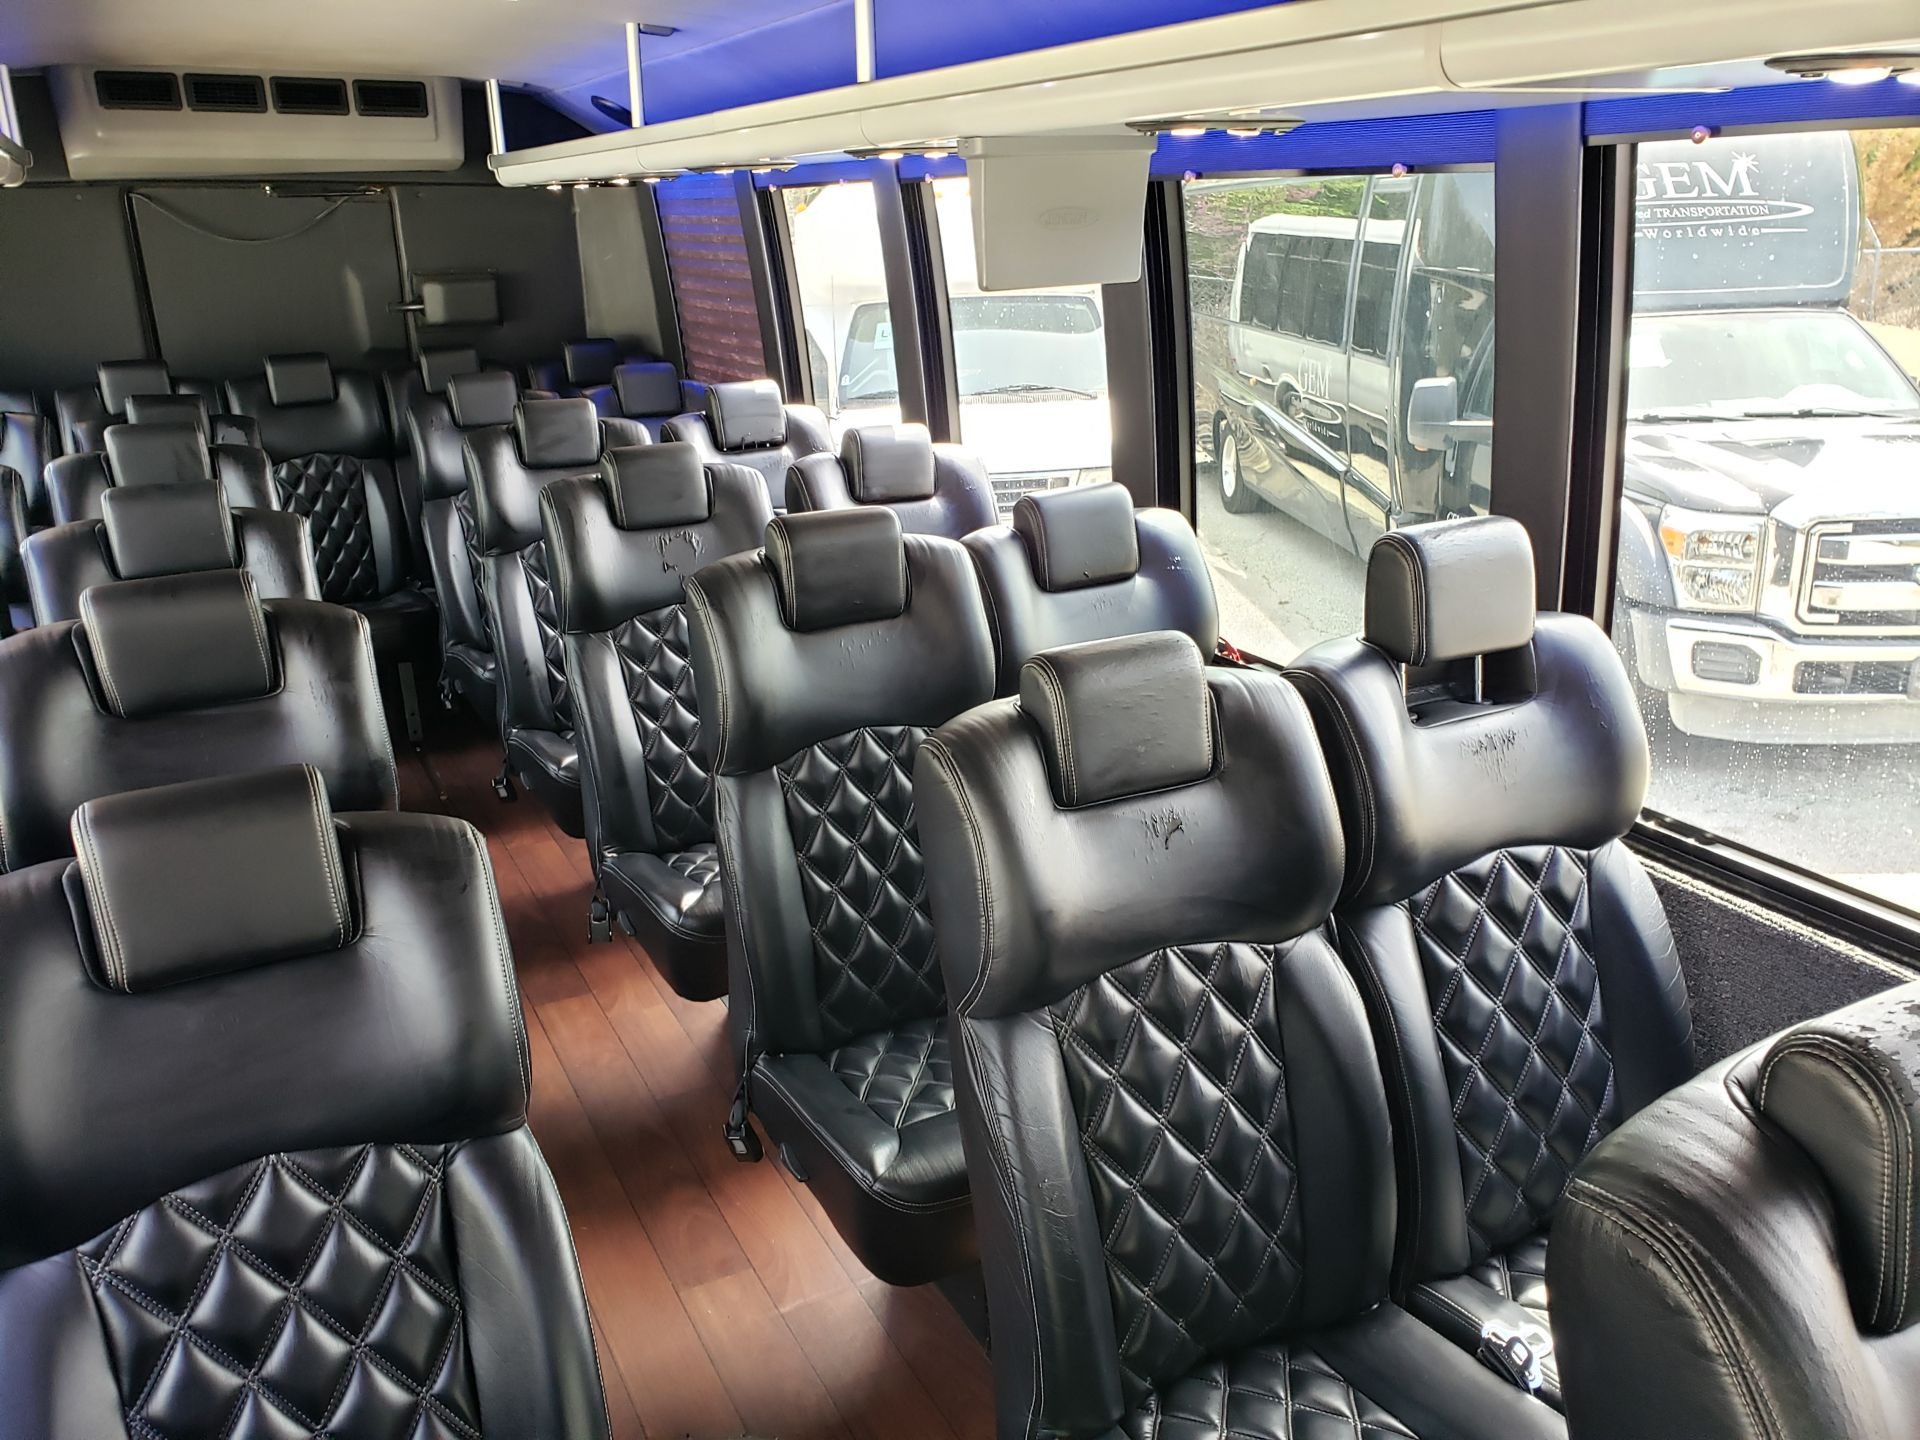 2013 Ford F550SD XL Grech Motors 33-Pass Shuttle Bus - Image 10 of 18